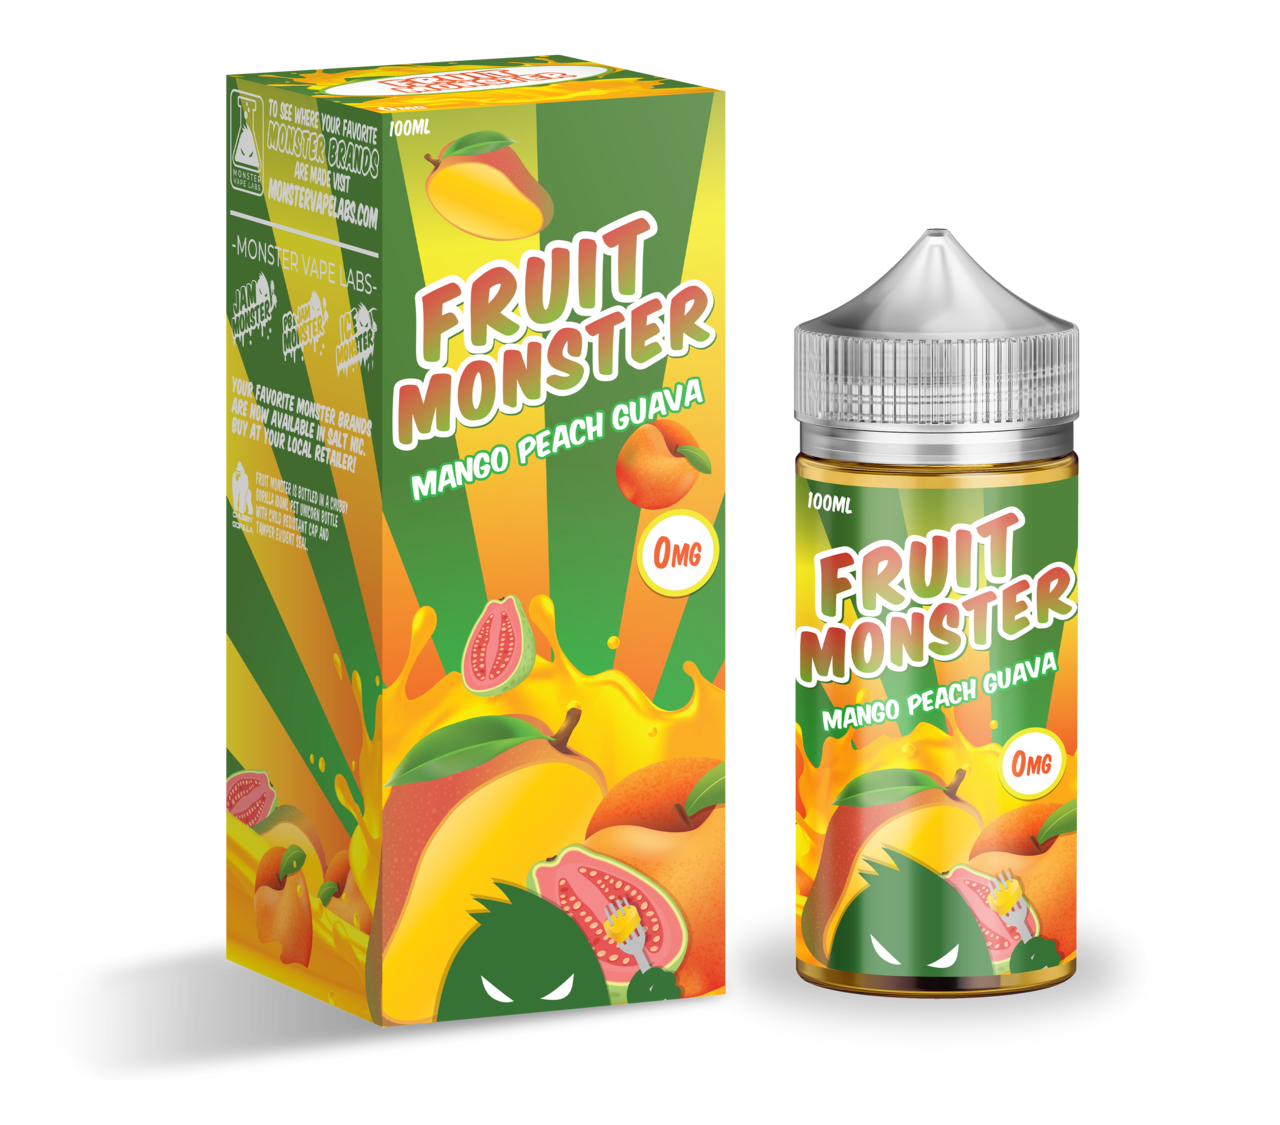 FRUIT MONSTER: MANGO PEACH GUAVA 100ML 3MG